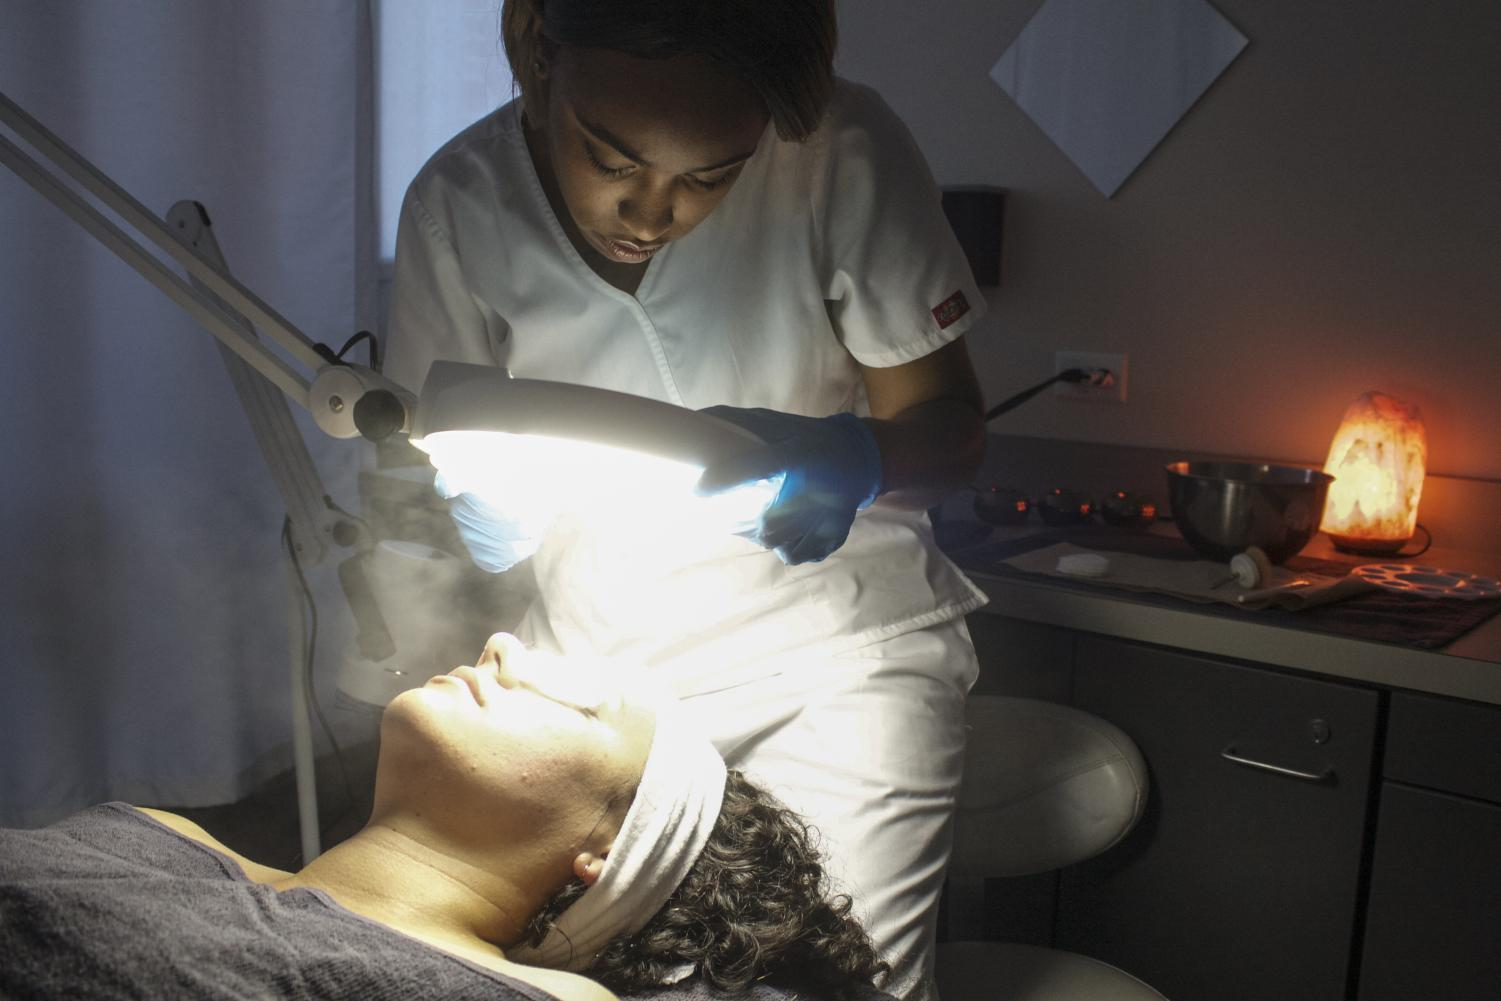 Kameal Thomas provides skin treatments as part of a hands-on esthetics program.